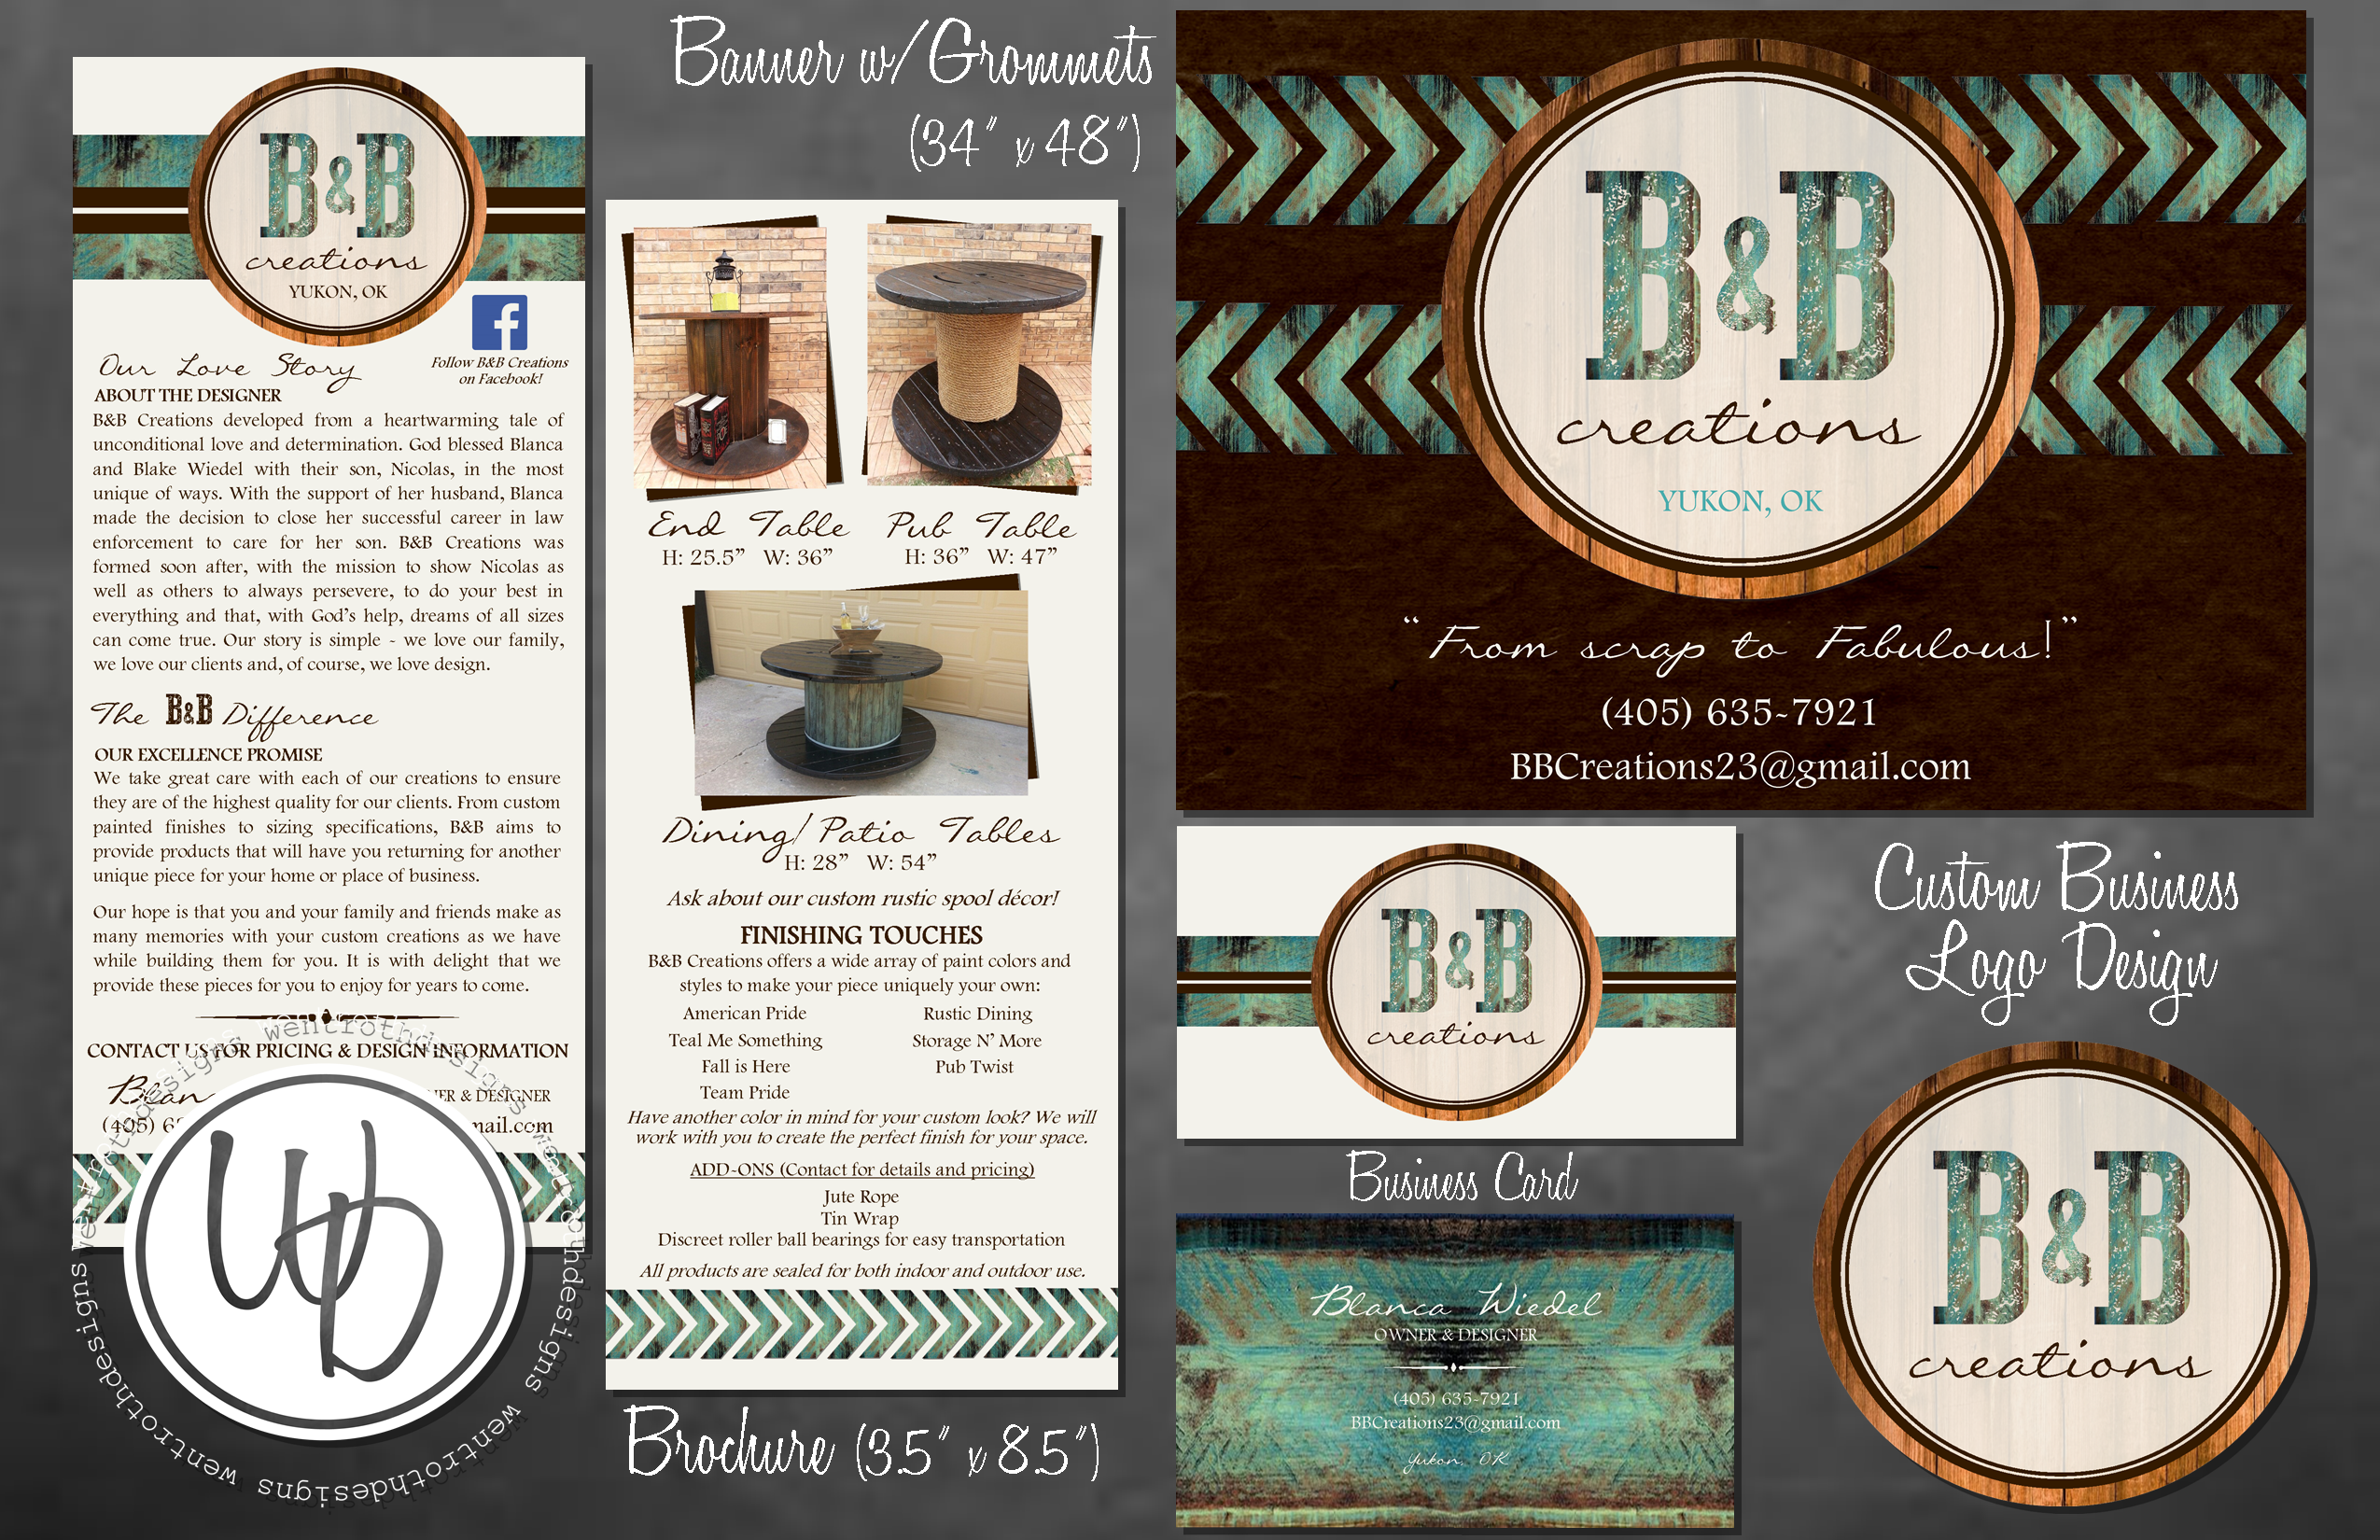 Rustic wood and turquoise business brochure rustic banner rustic rustic wood and turquoise business brochure rustic banner rustic business logo and rustic business card design by wentroth designs reheart Images